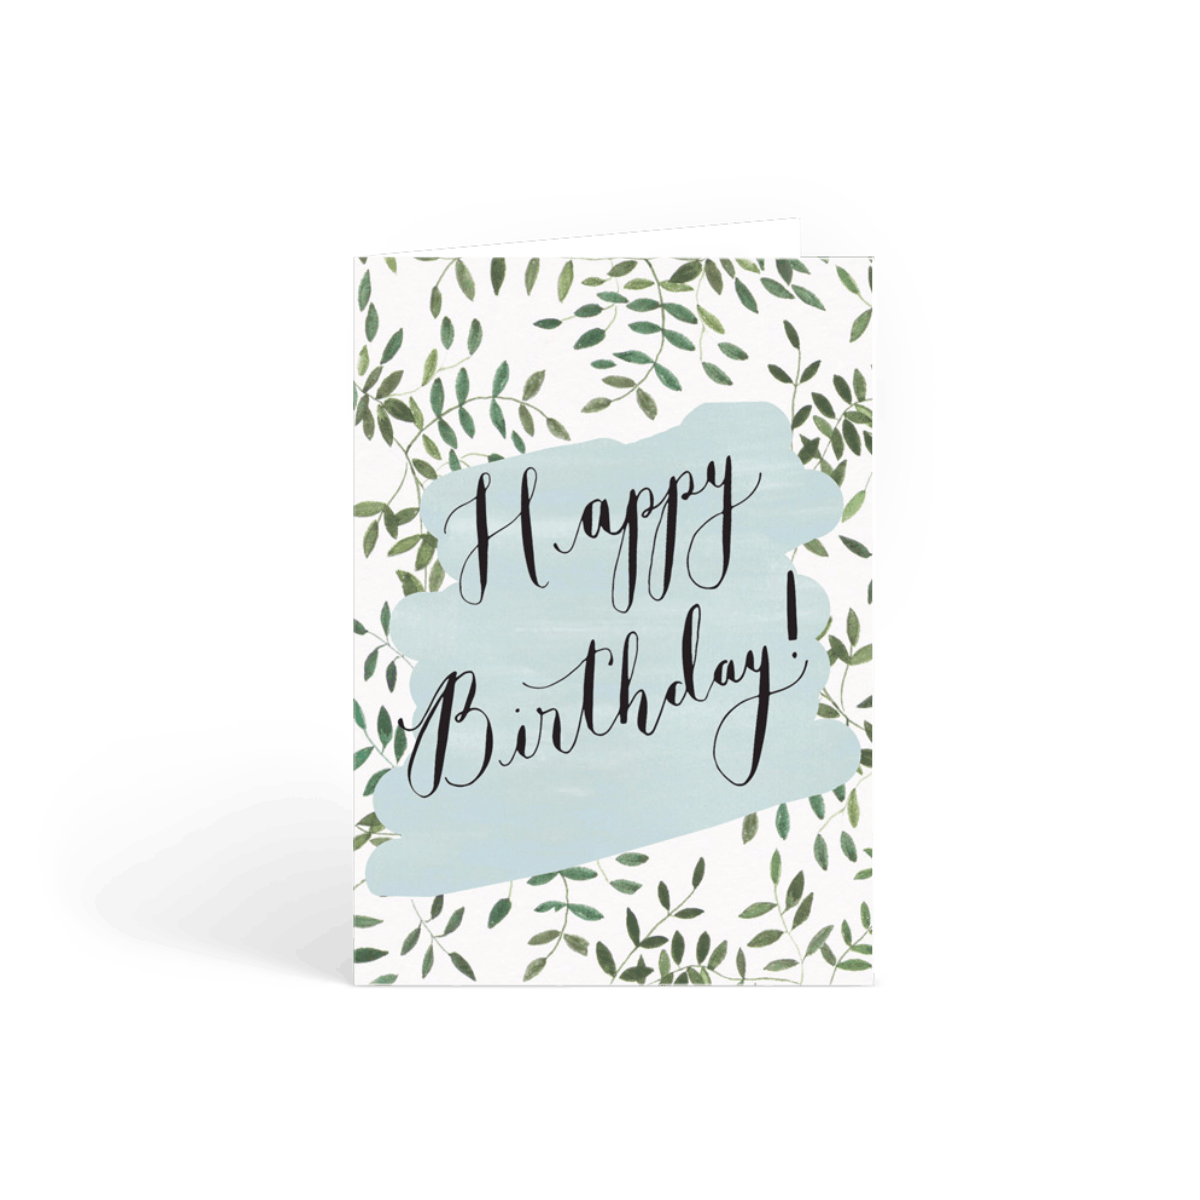 Https%3a%2f%2fwww.papier.com%2fproduct image%2f14752%2f2%2fbirthday botanical 3931 front 1481124227.png?ixlib=rb 1.1